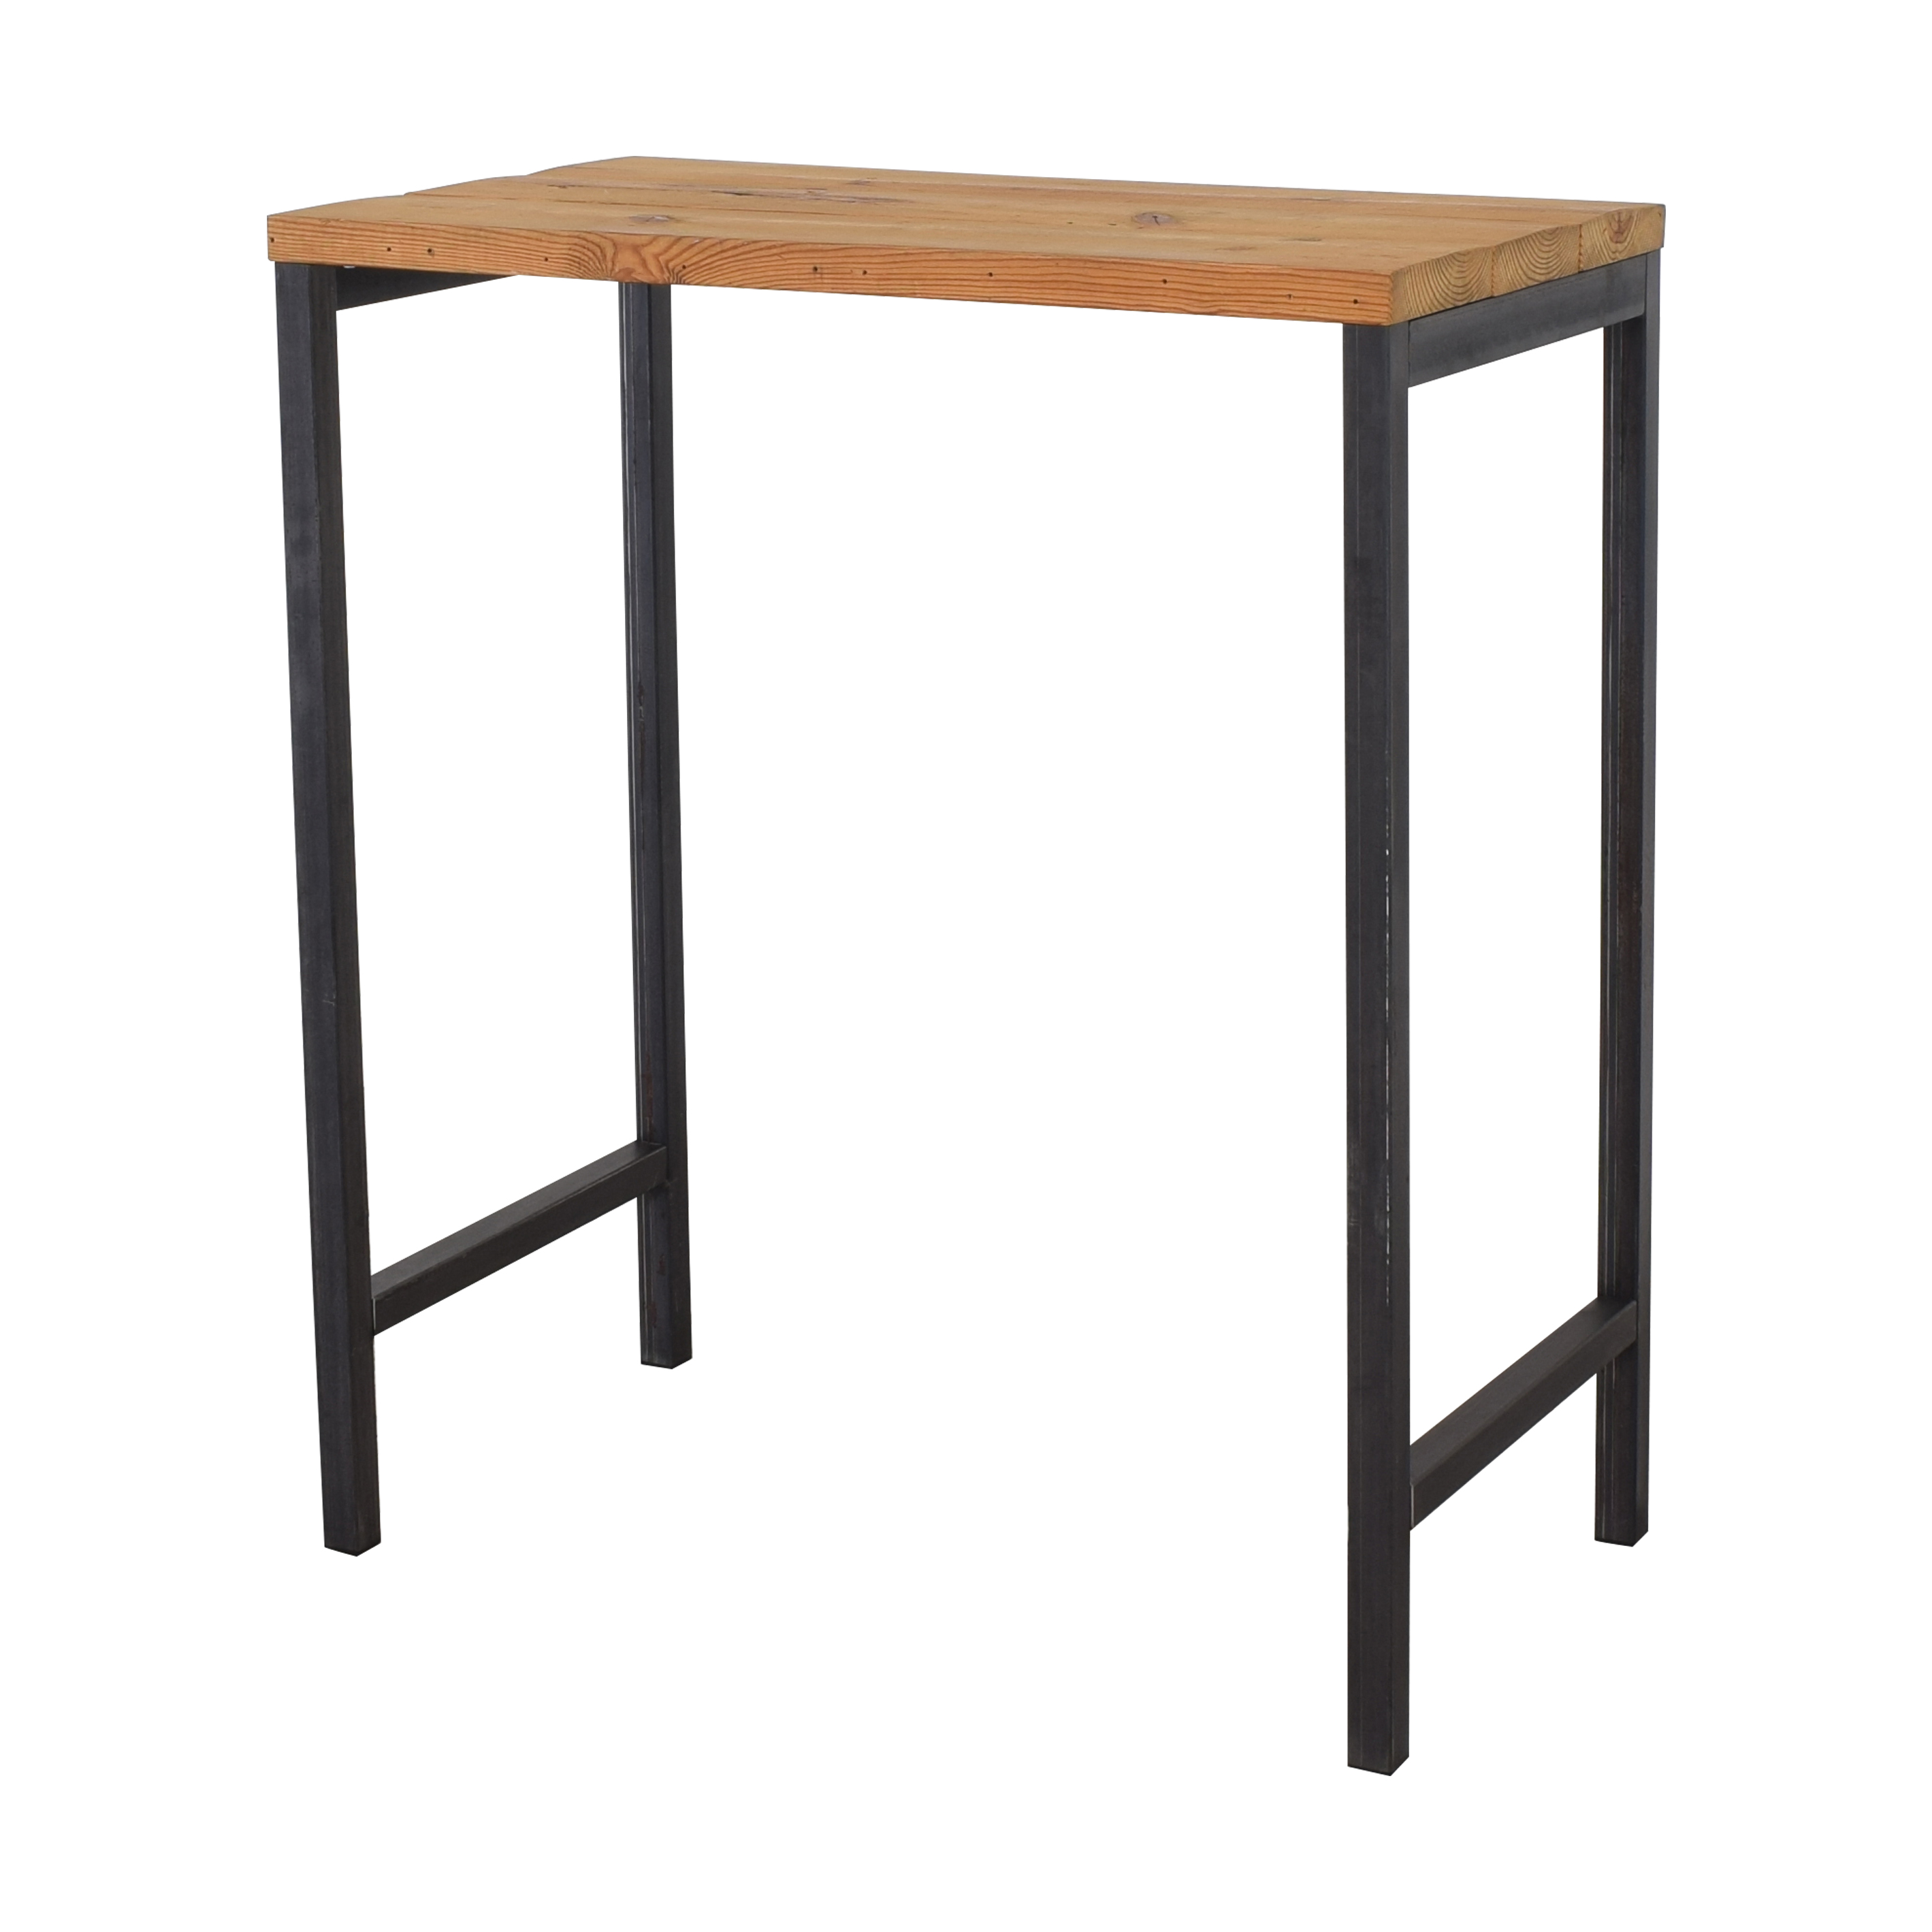 buy Arc + Timber Arc + Timber Monterey Standing Desk online